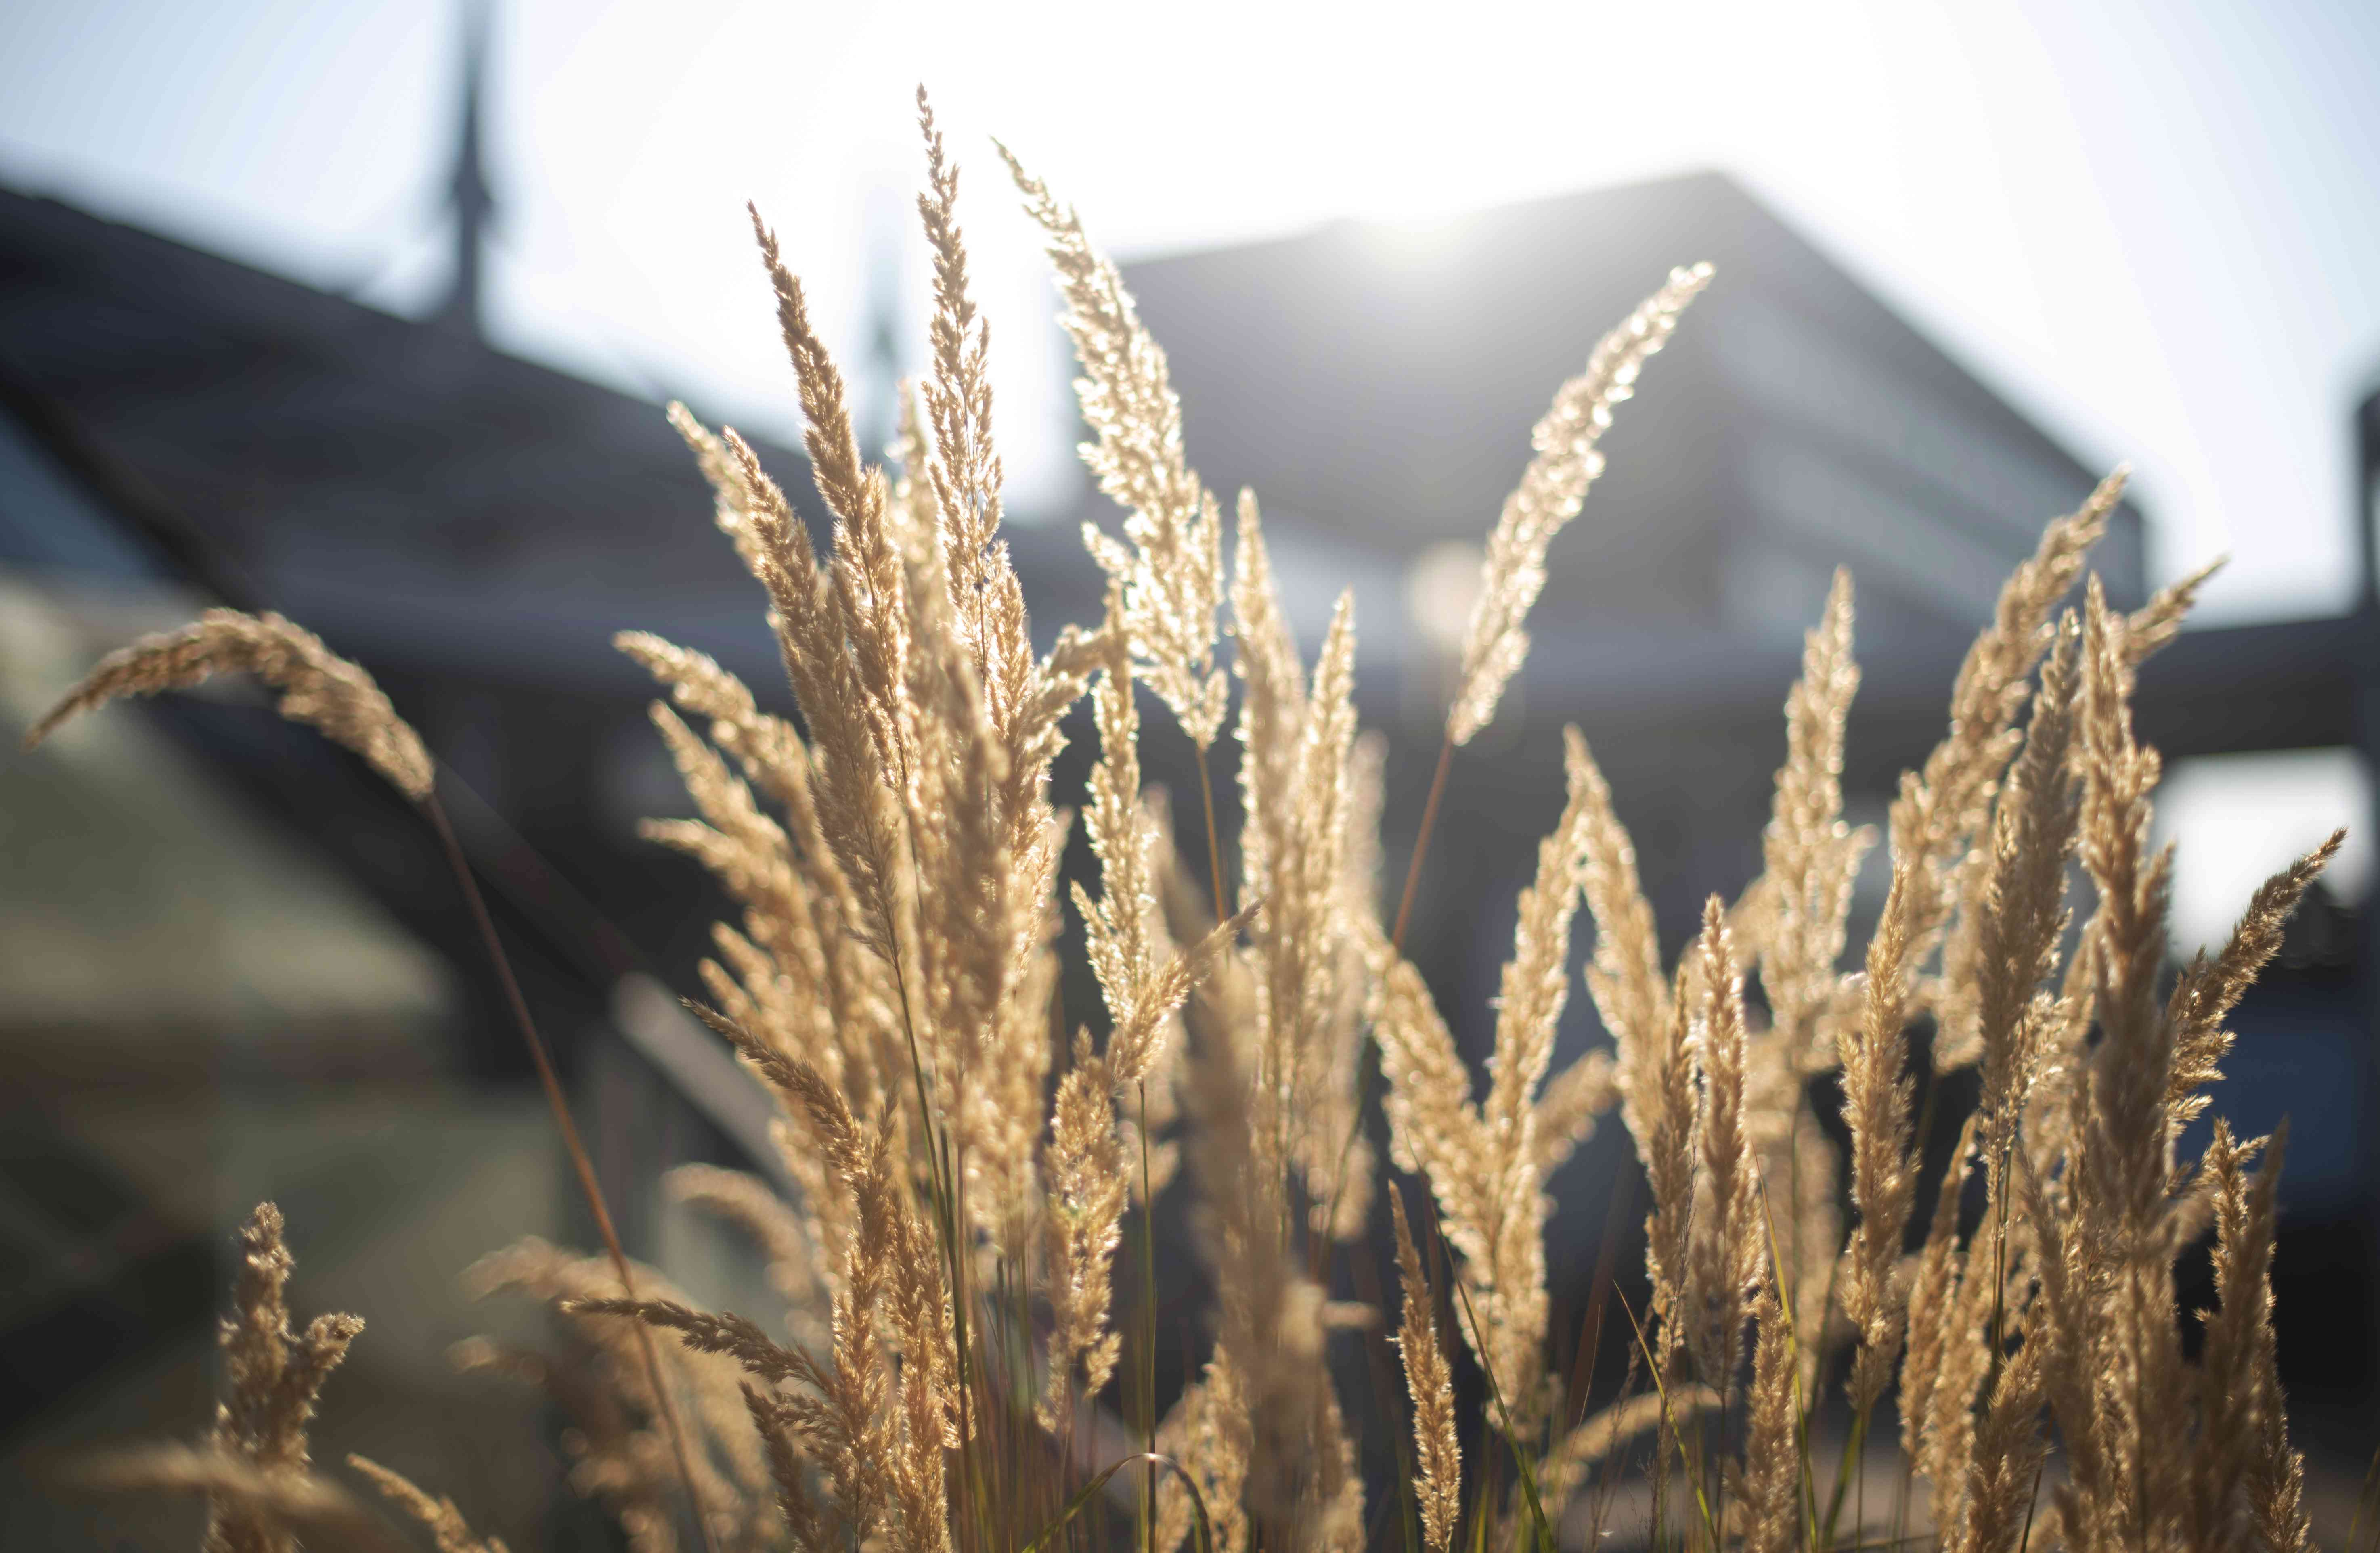 Feather reed grass in front of sunlight